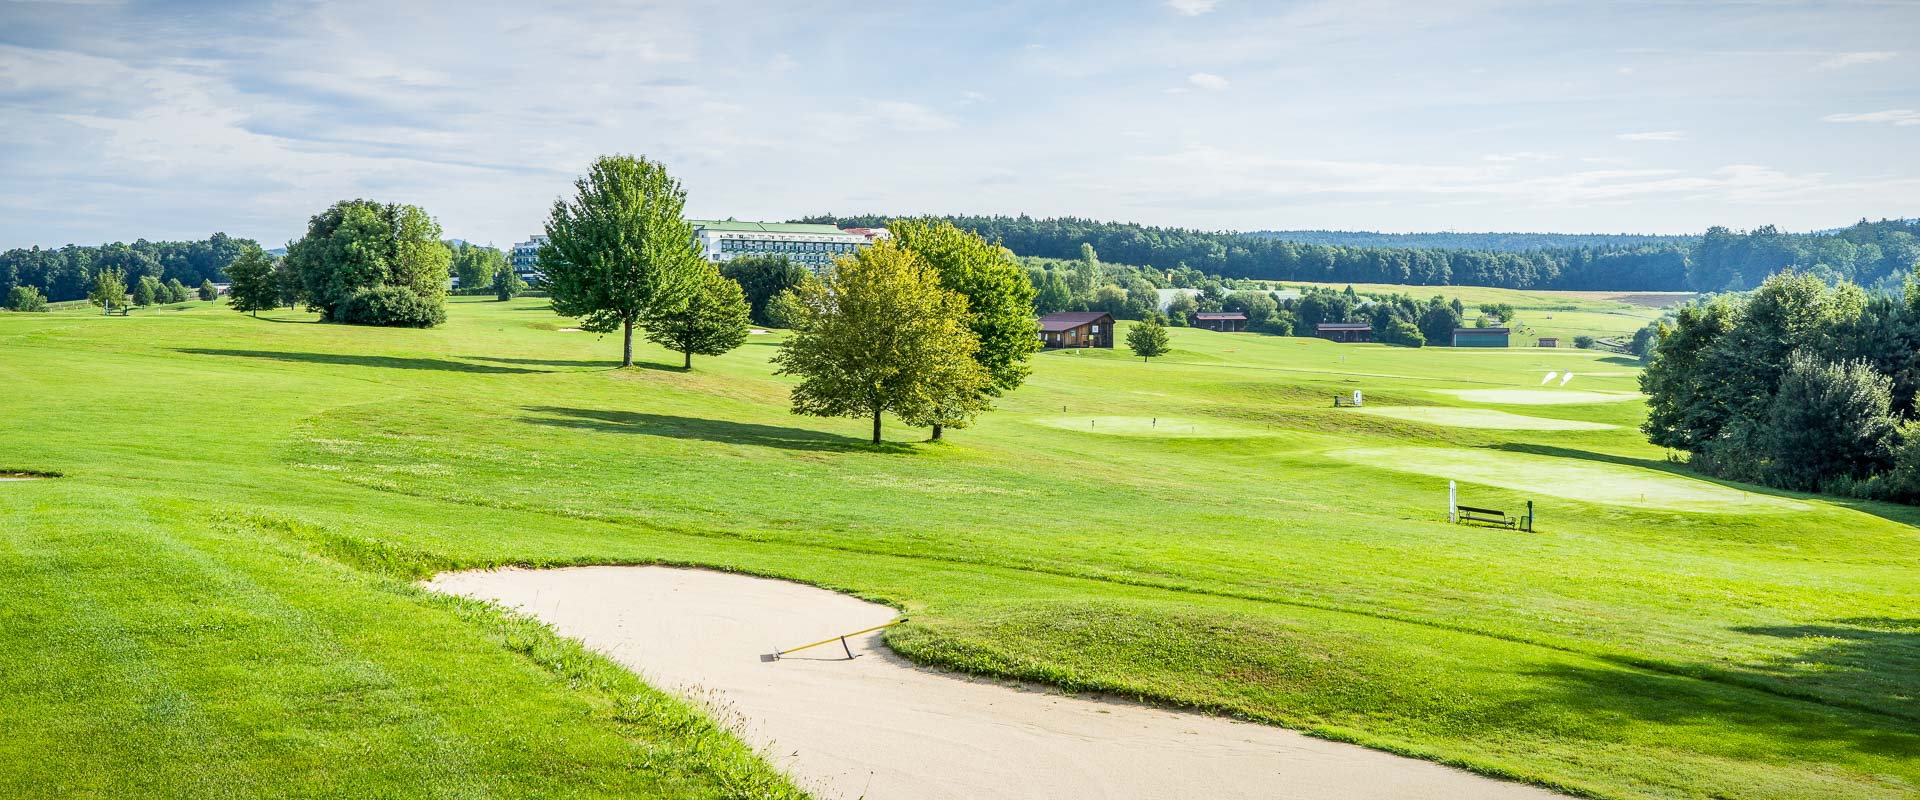 Reiters Golf Bad Tatzmannsdorf